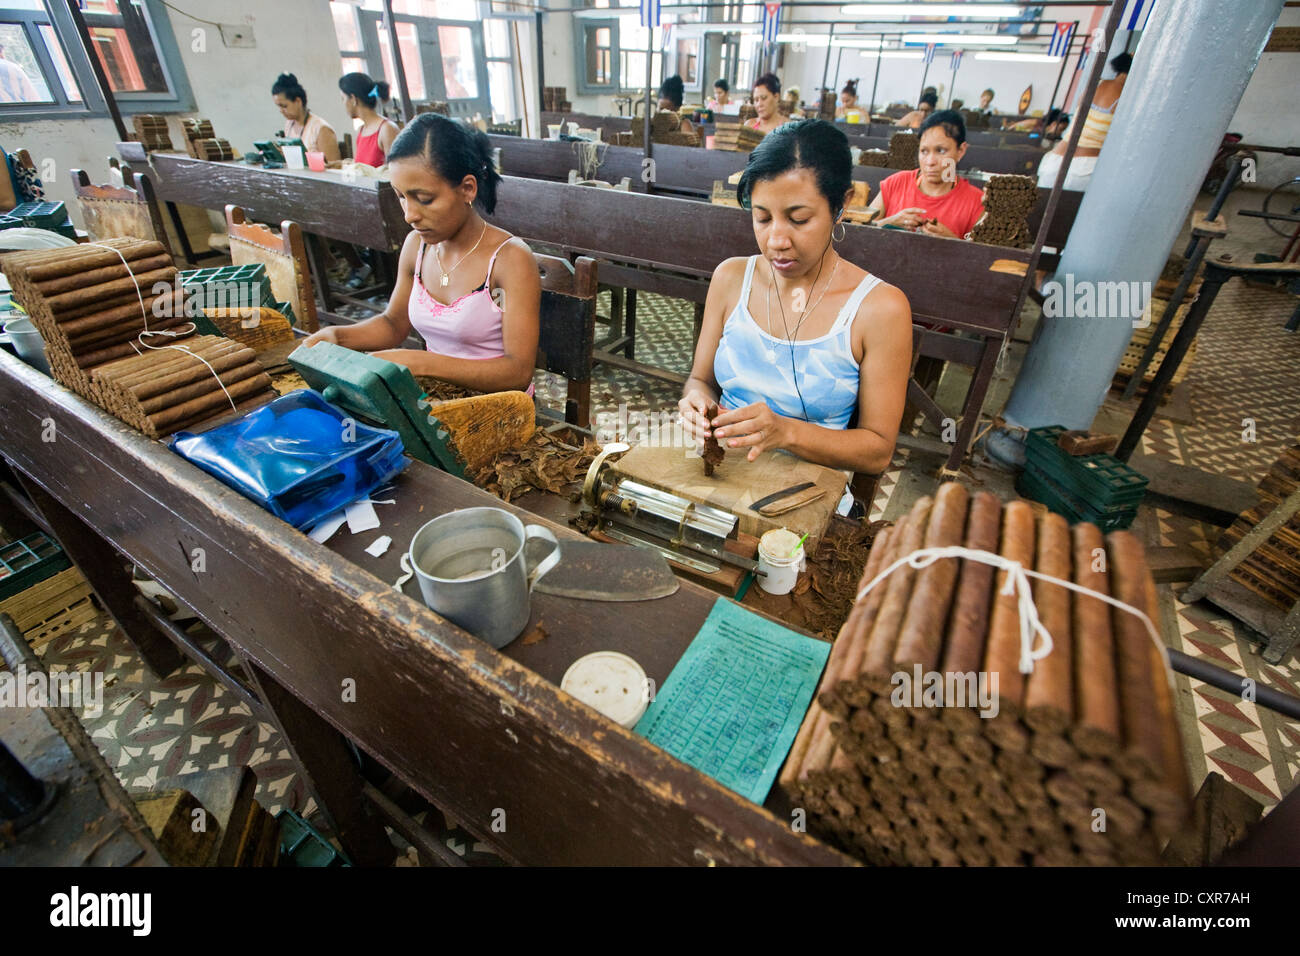 Some of more than 100 workers in the Fabrica de Tabaco Carlos Rodriguez Cariaga cigar factory, Ciego de Avila, Cuba - Stock Image